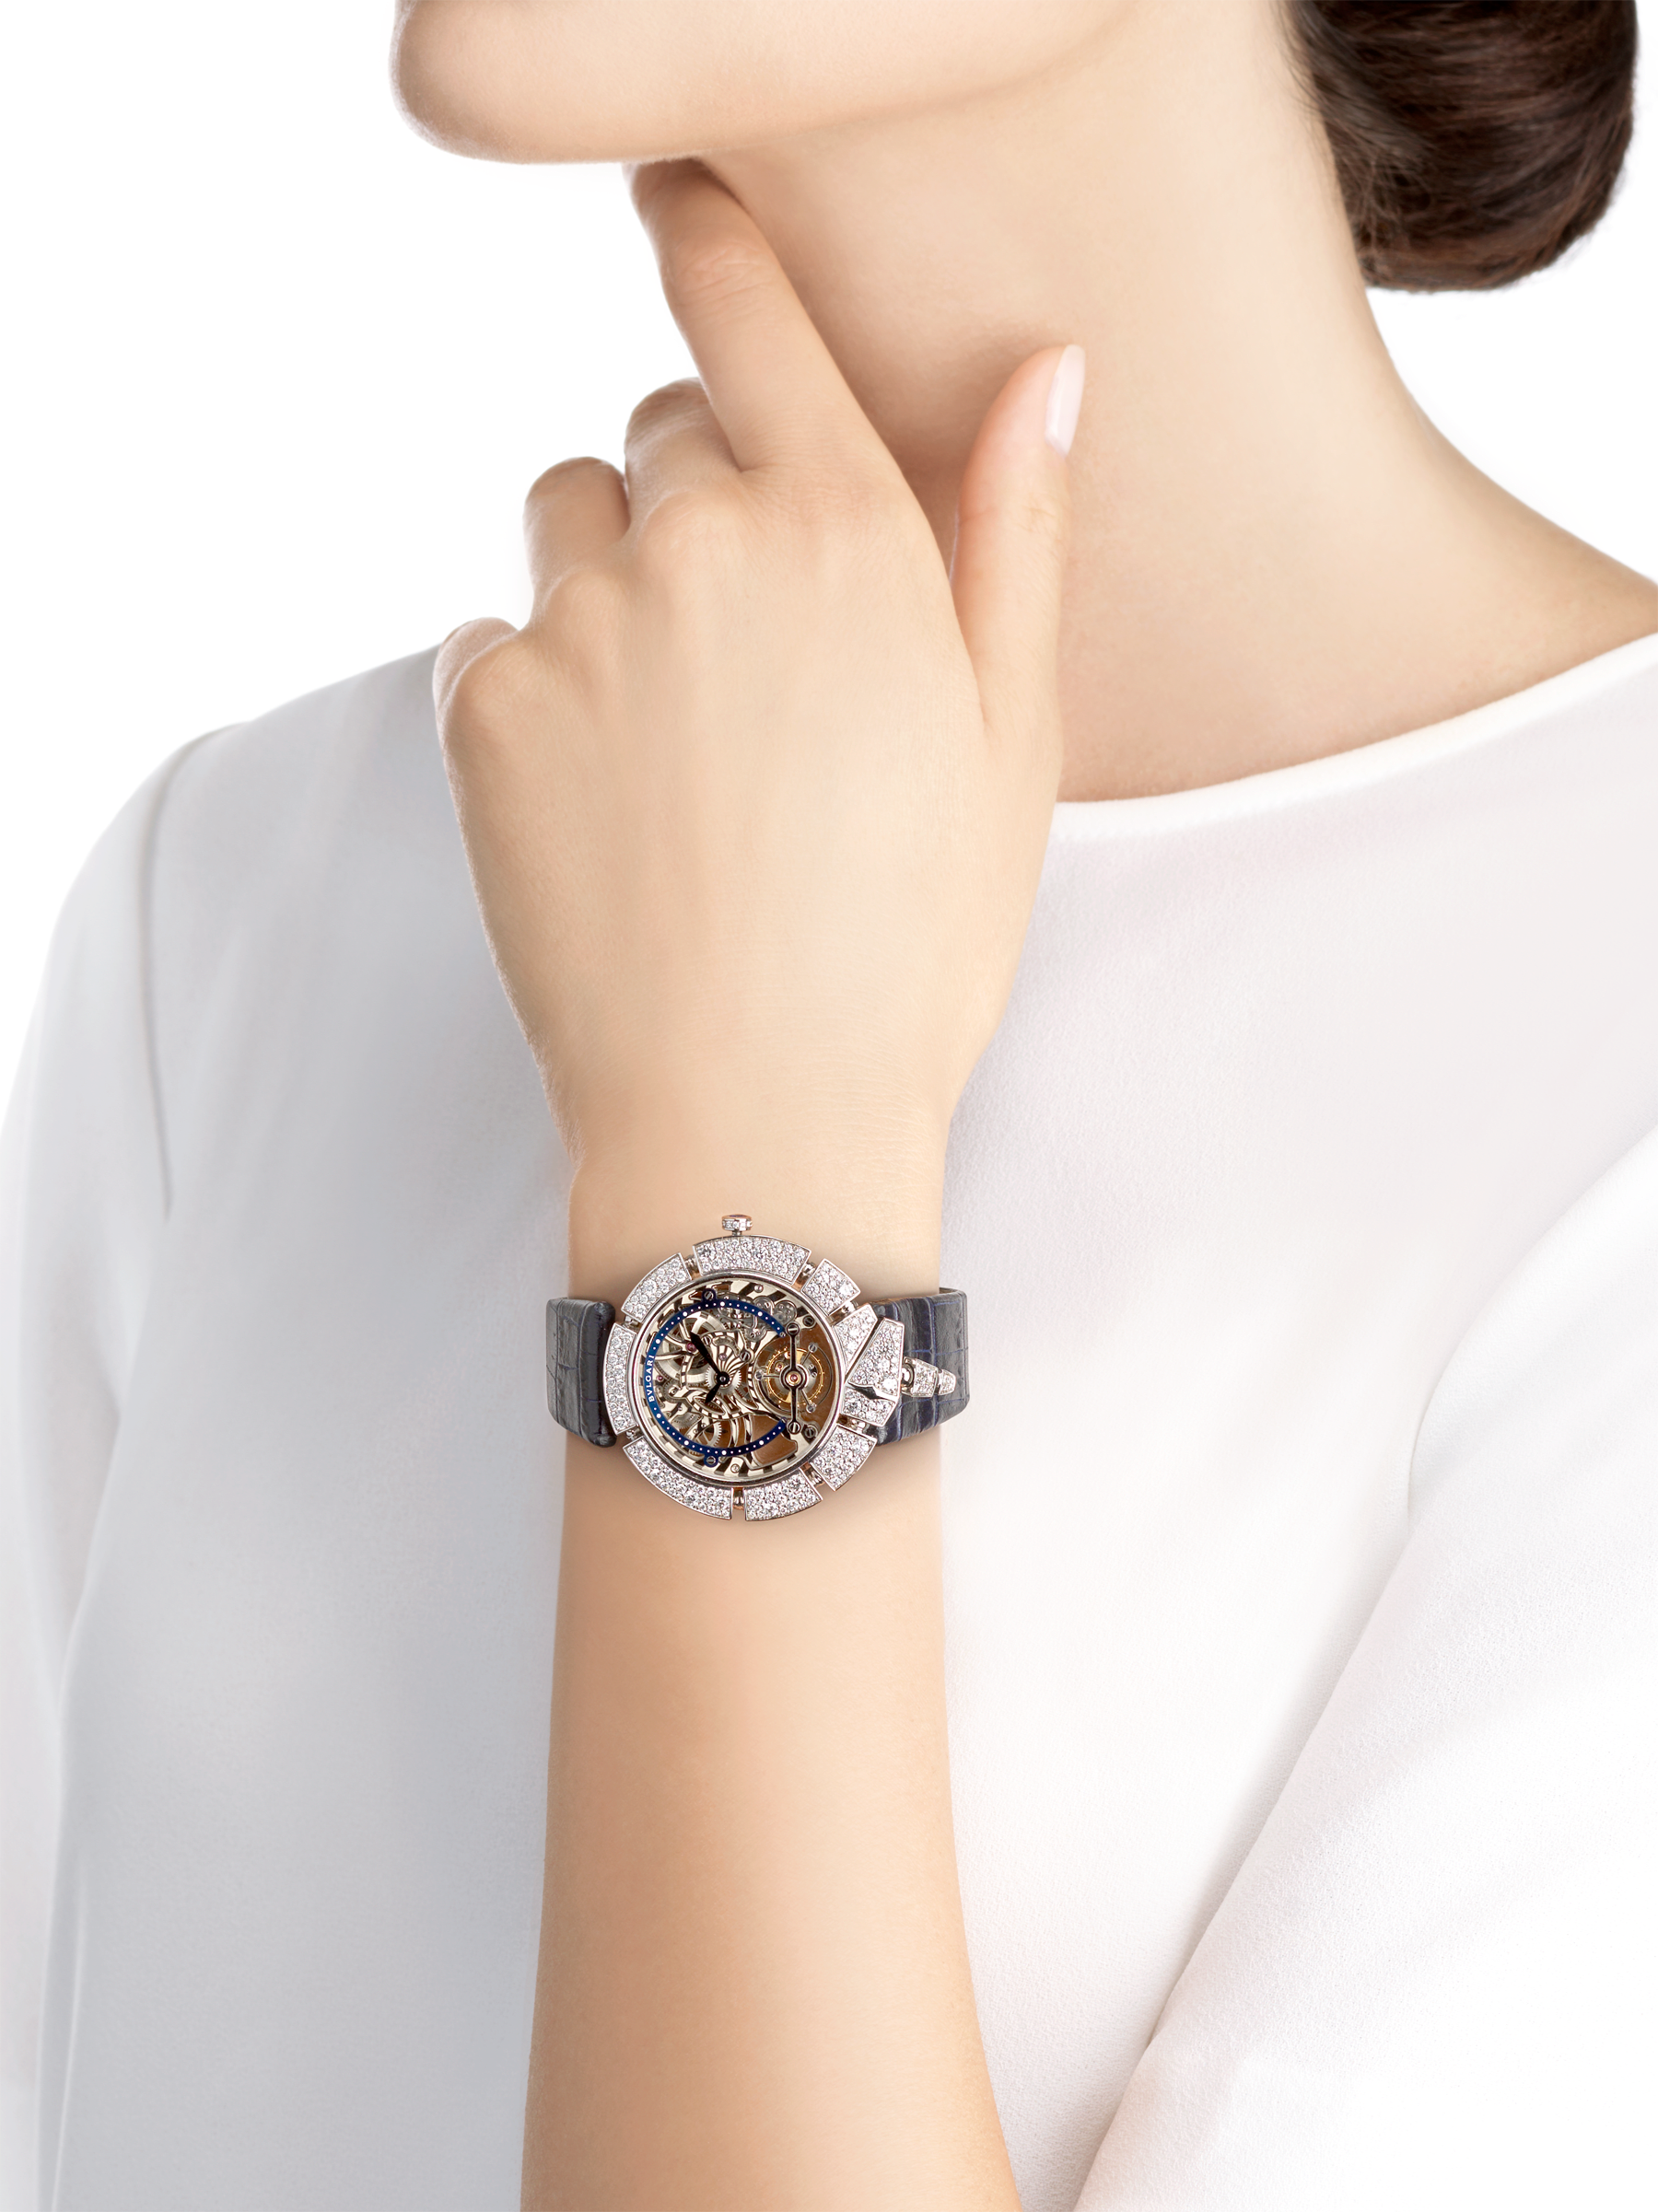 Serpenti Incantati Limited Edition watch with mechanical manufacture skeletonized movement, tourbillon and manual winding. 18 kt white gold case set with brilliant cut diamonds, transparent dial and blue alligator bracelet. 102541 image 4